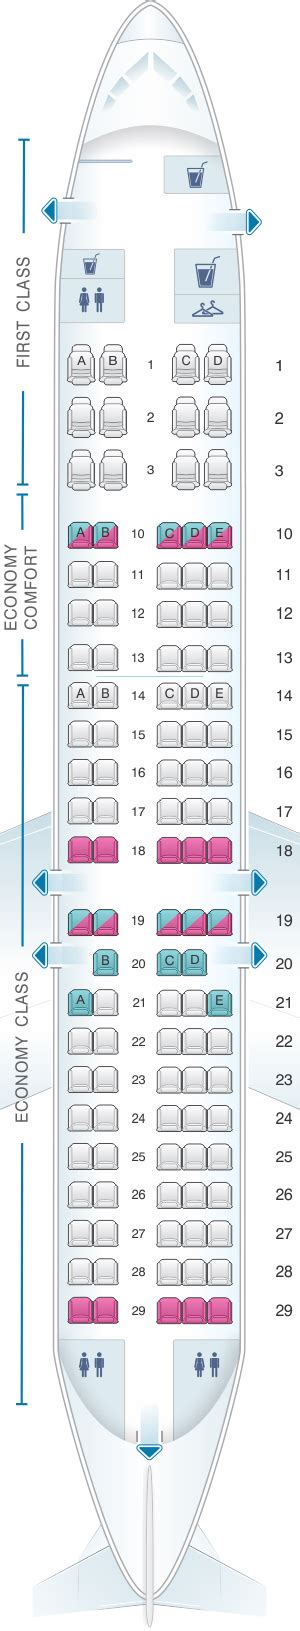 delta 717 seat map seat map delta air lines boeing b717 seatmaestro